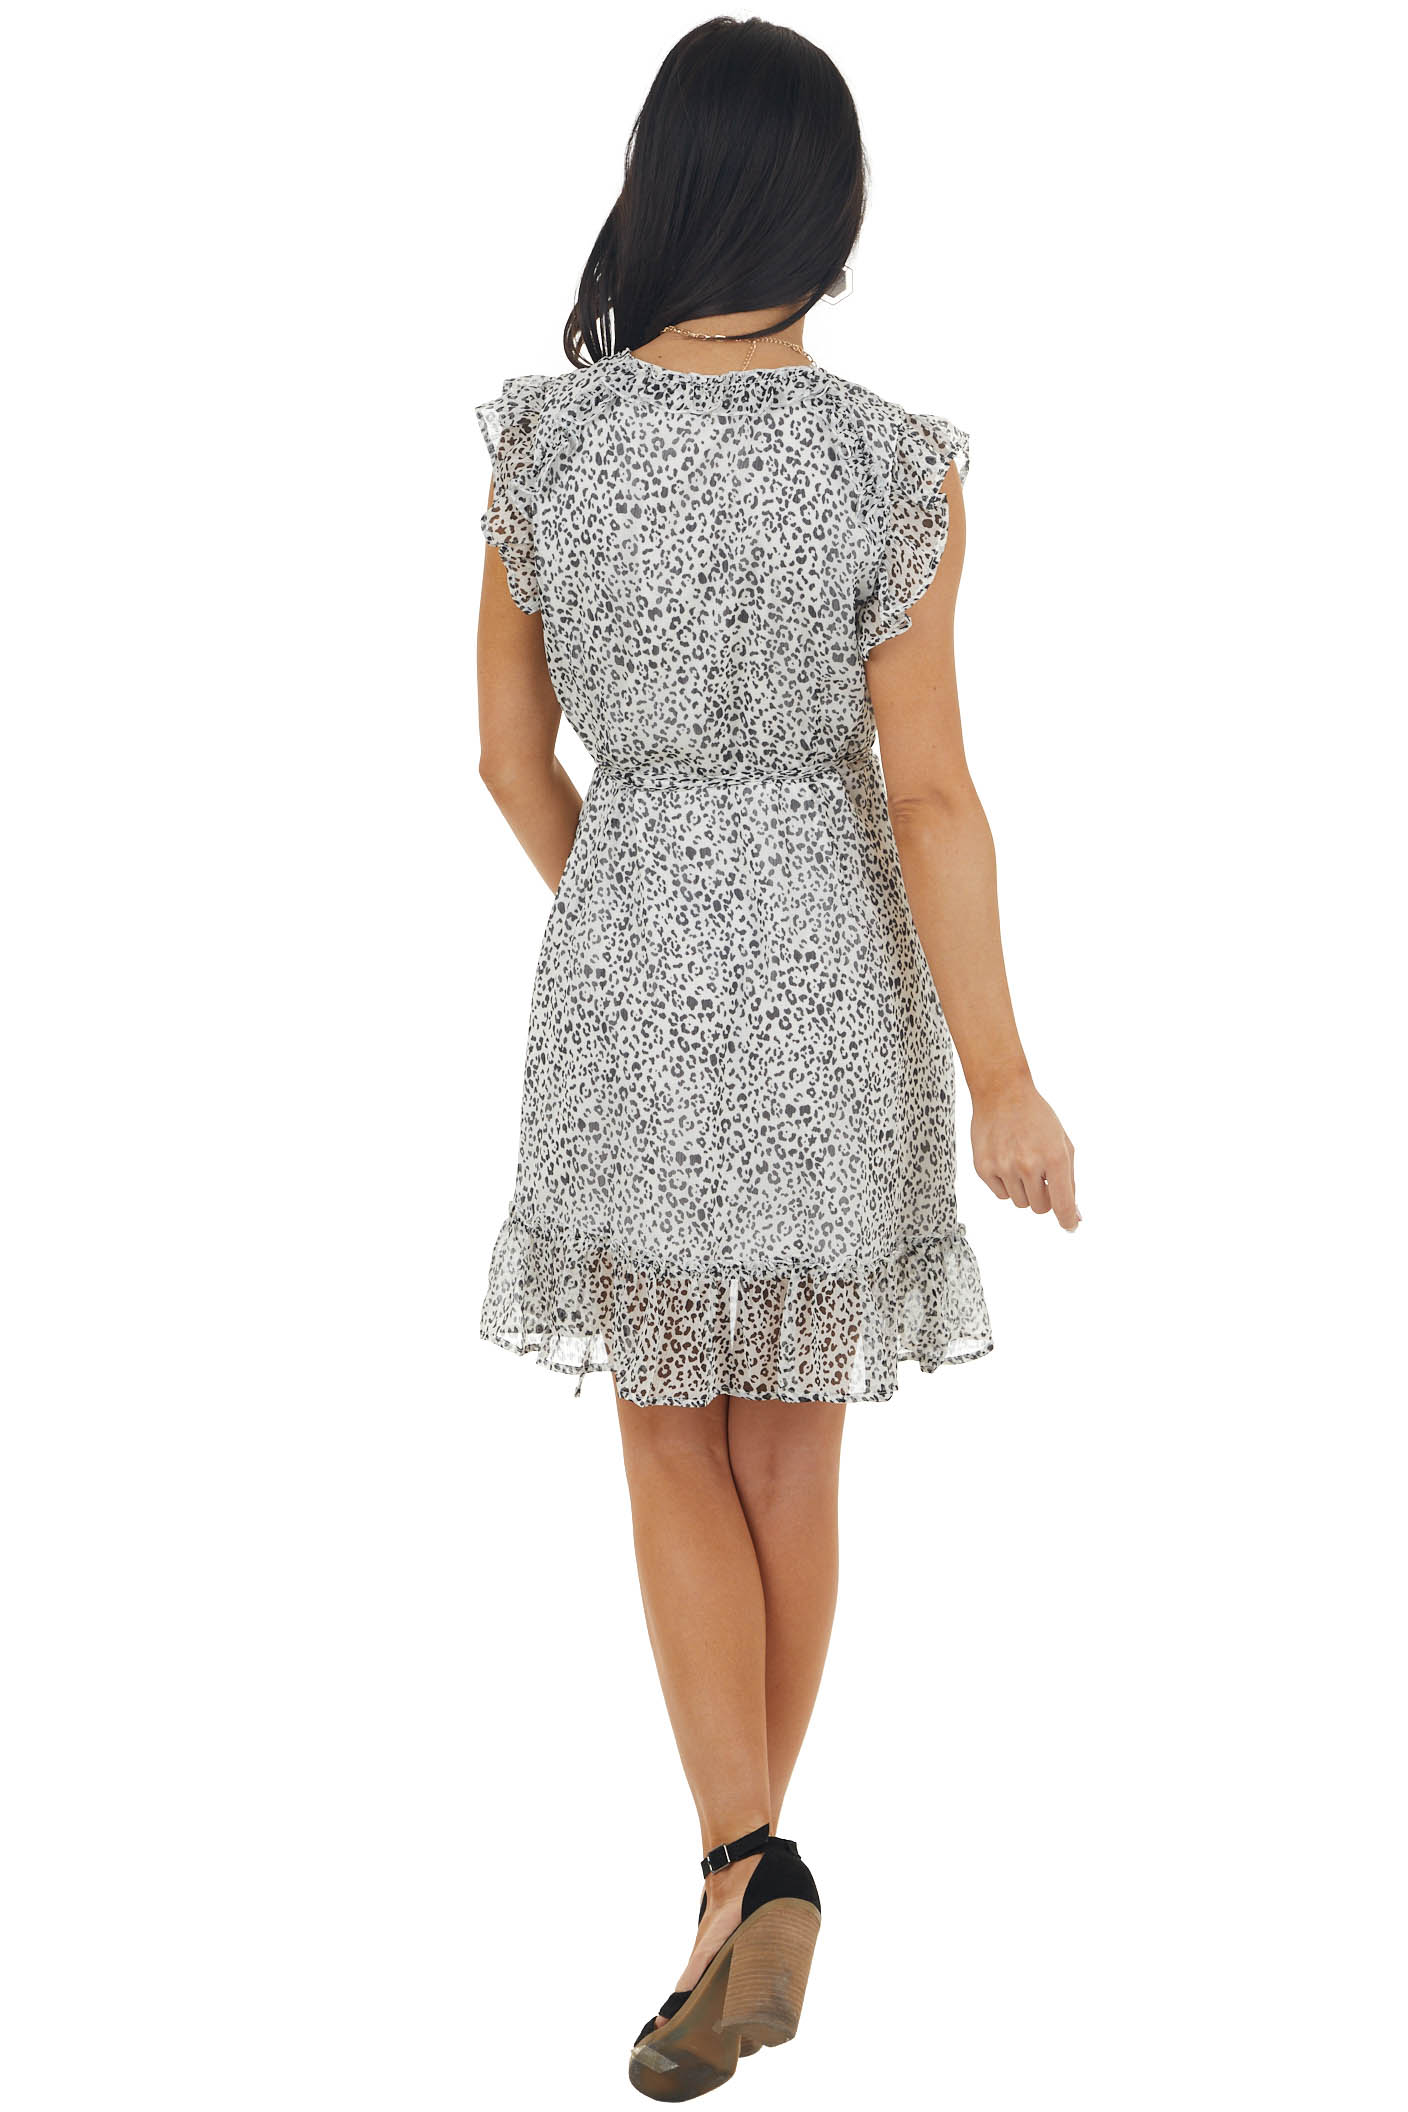 Ivory Leopard Print Textured Woven Wrap Dress with Ruffles